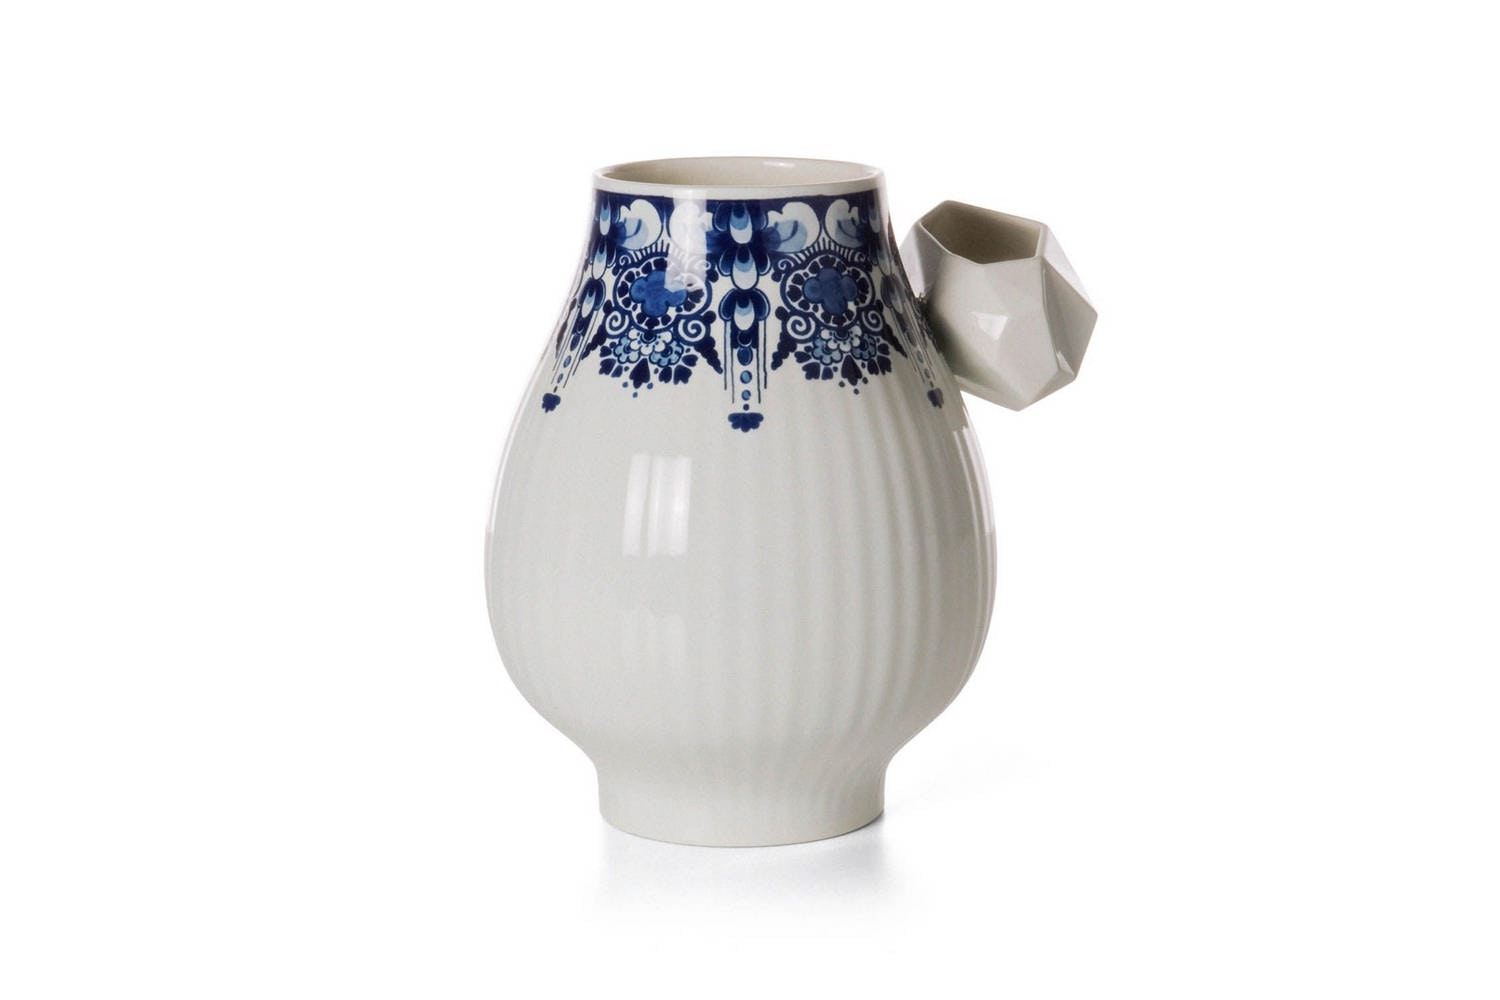 Delft Blue No. 08 Vase by Marcel Wanders for Moooi